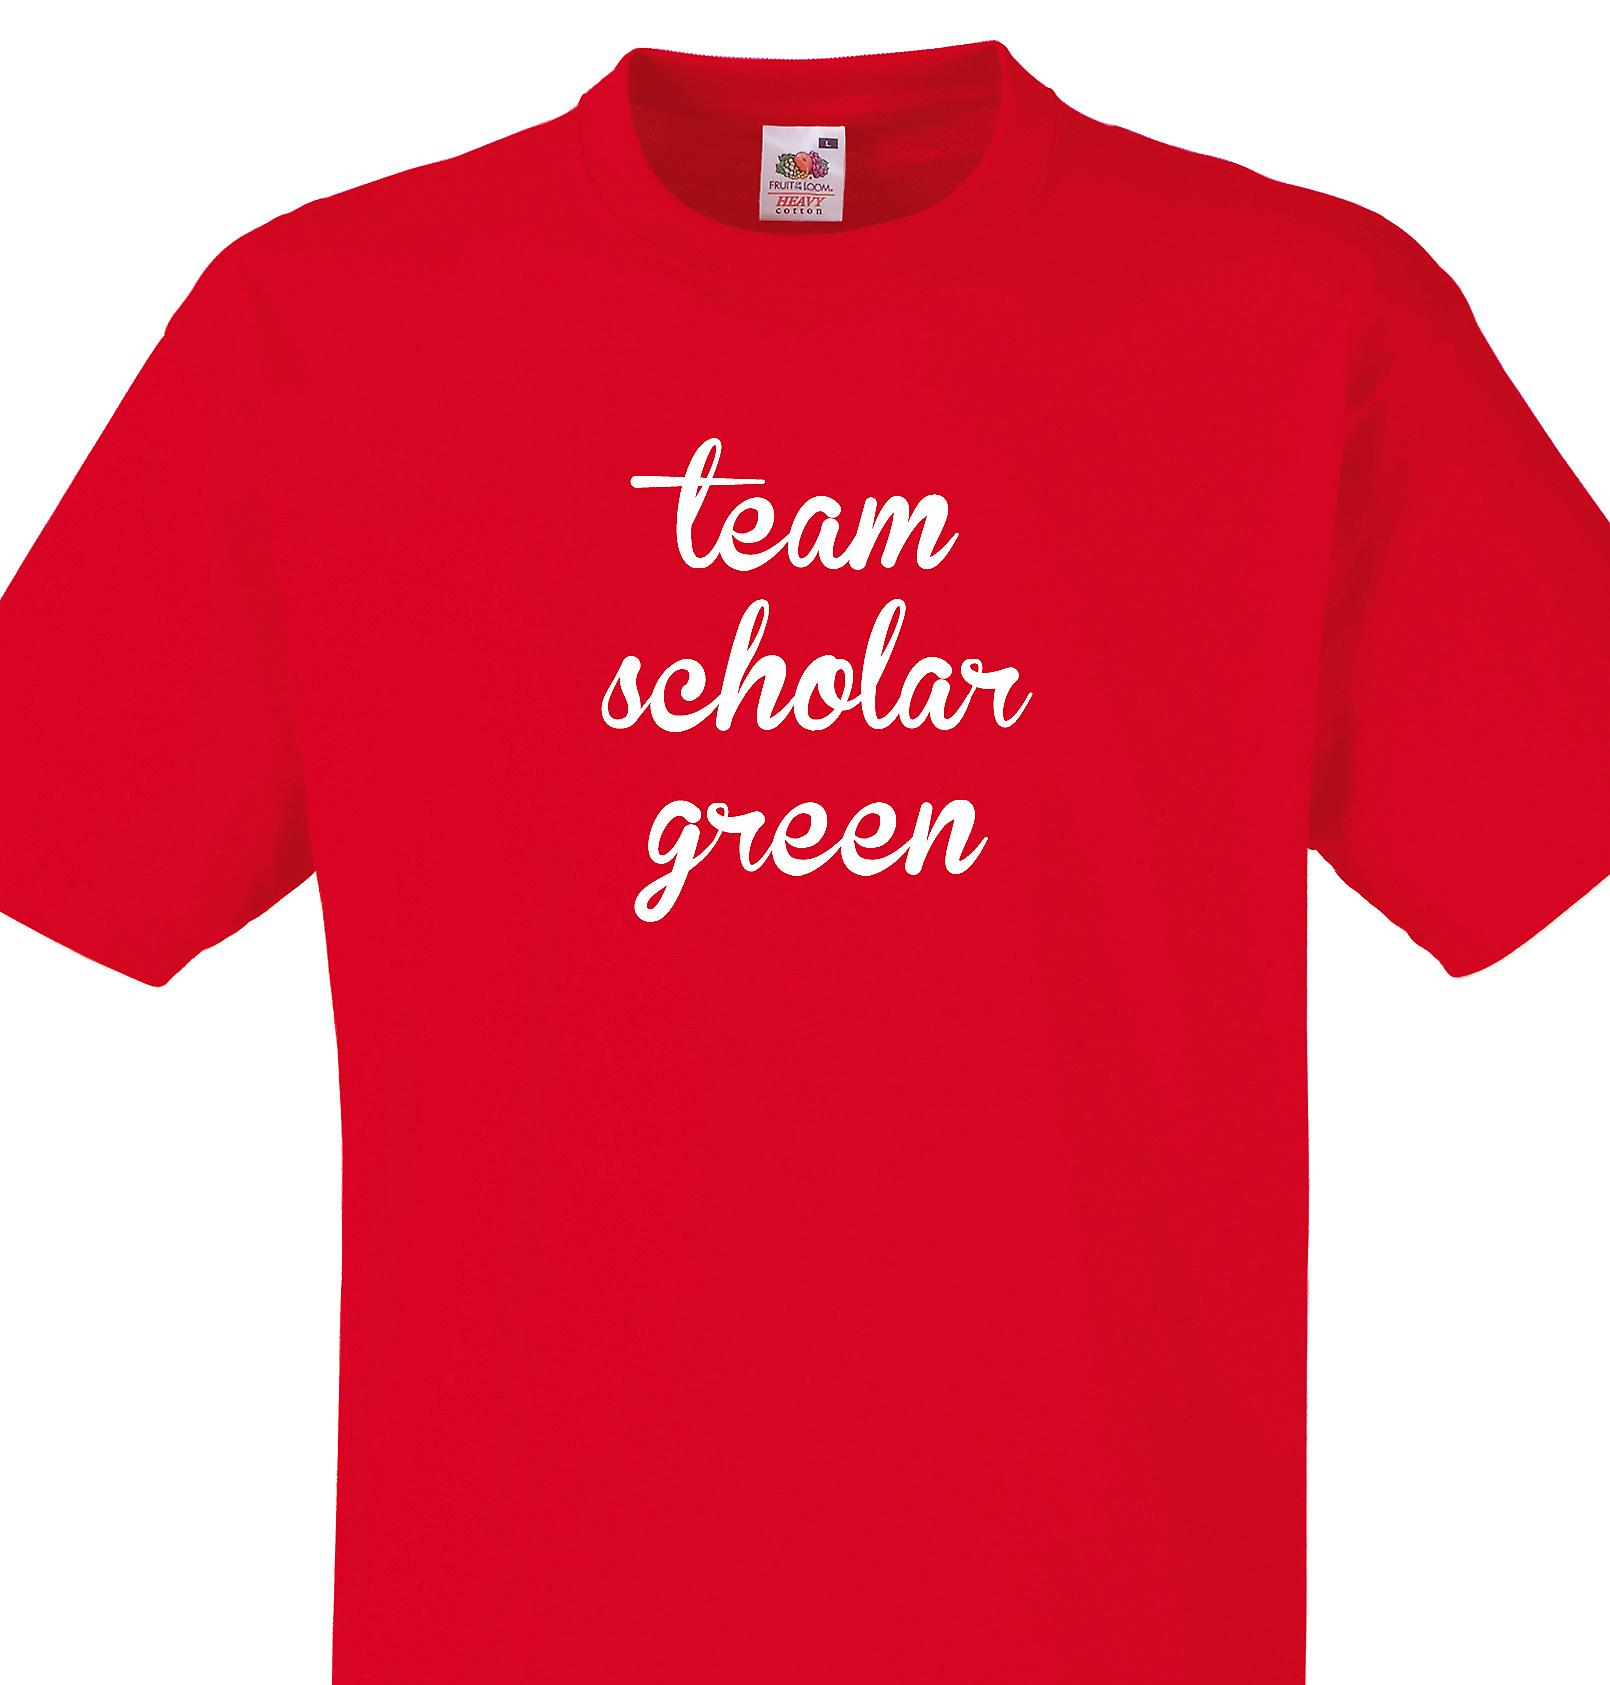 Team Scholar green Red T shirt